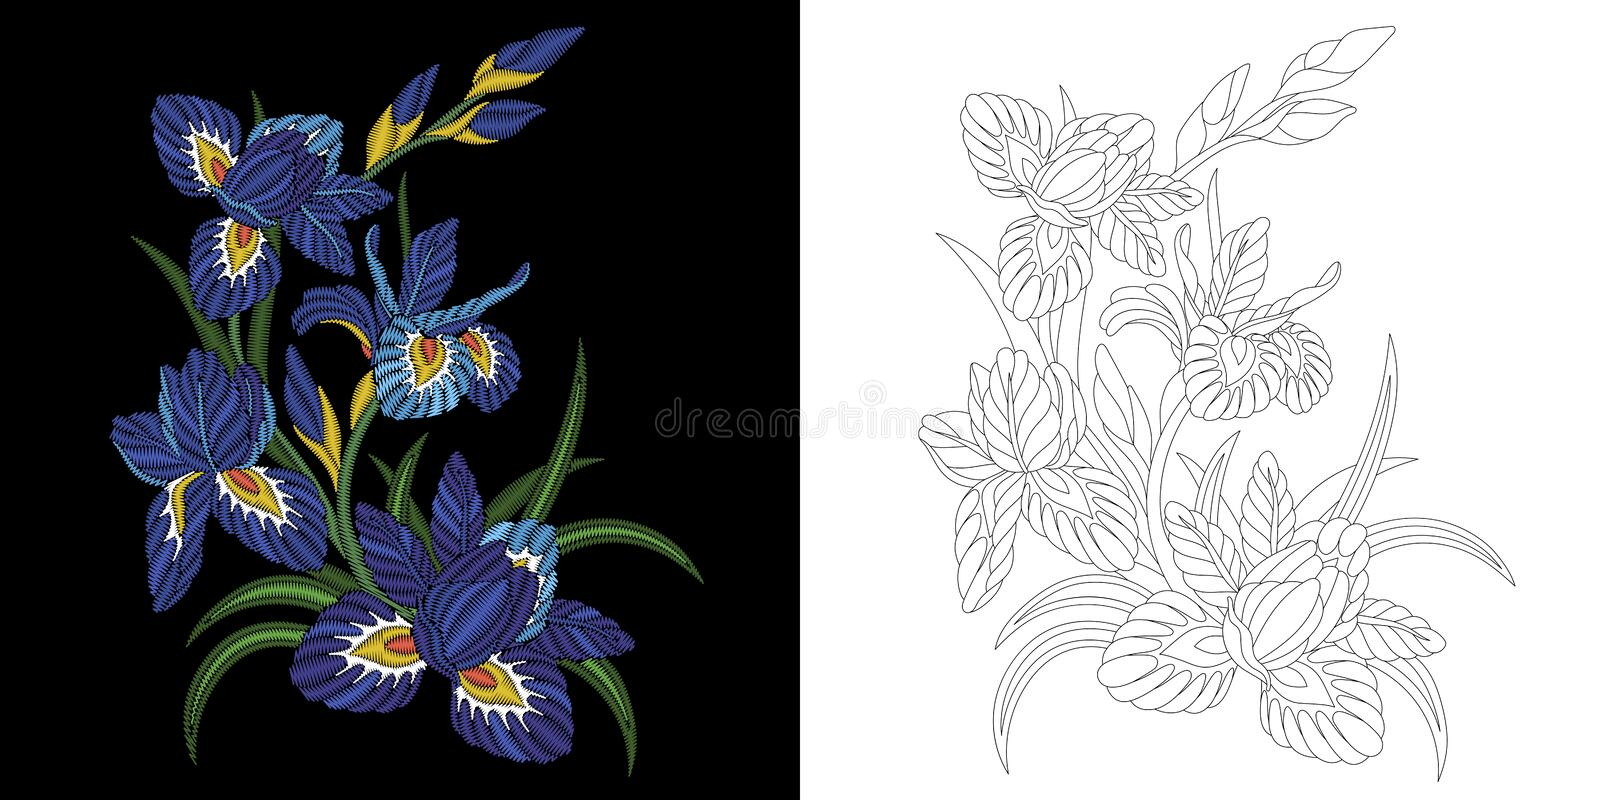 Embroidery floral design royalty free stock photography